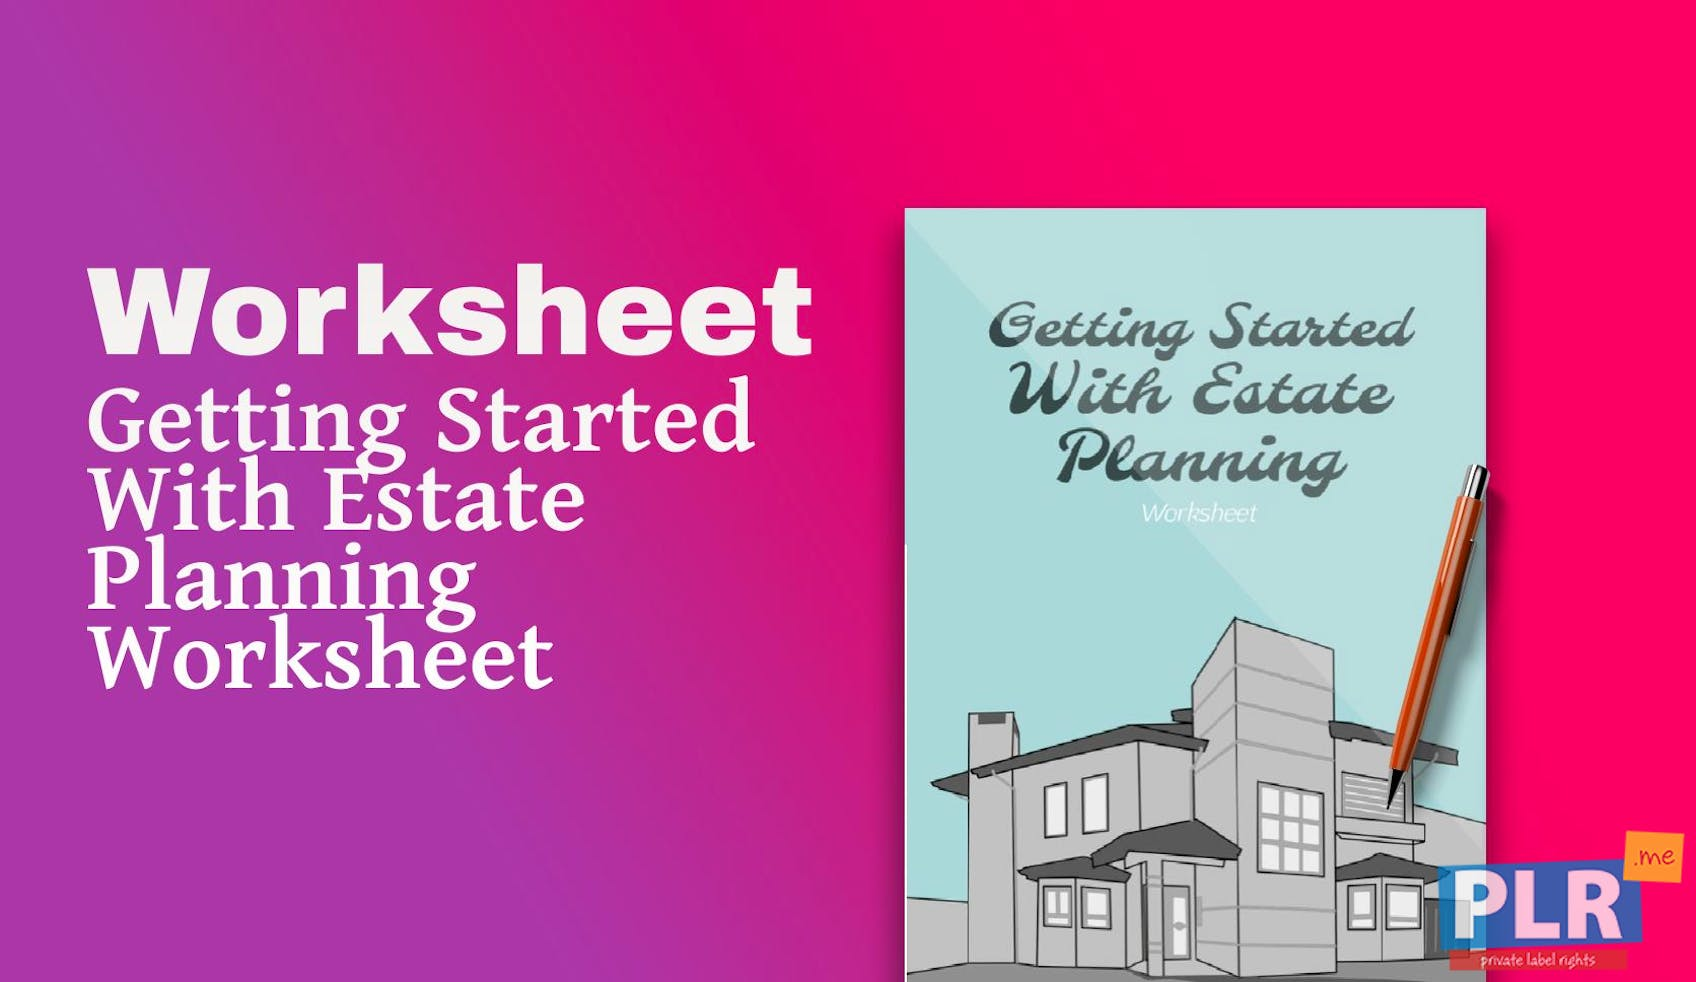 Getting Started With Estate Planning Worksheet